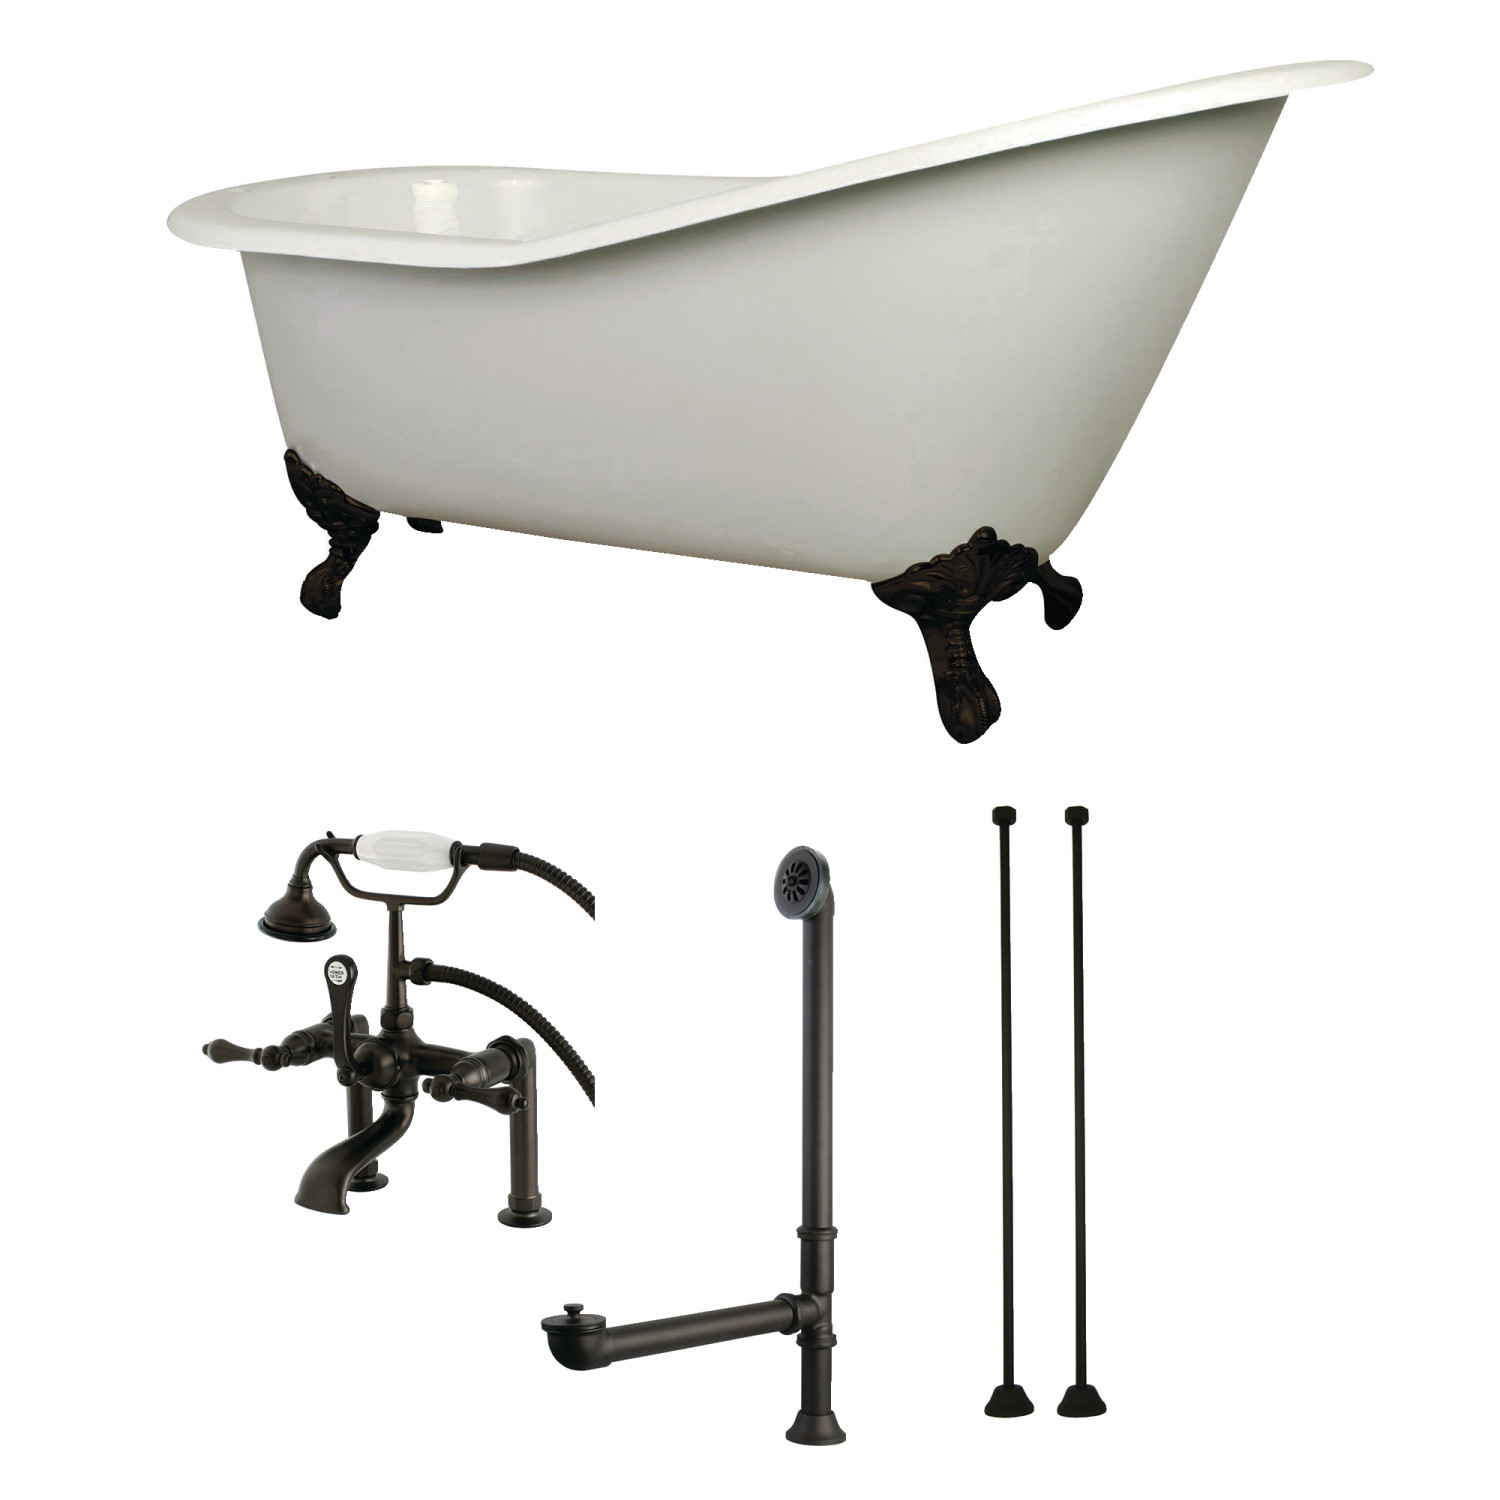 62 inch cast iron clawfoot tub with faucet drain and supply lines package in oil rubbed bronze